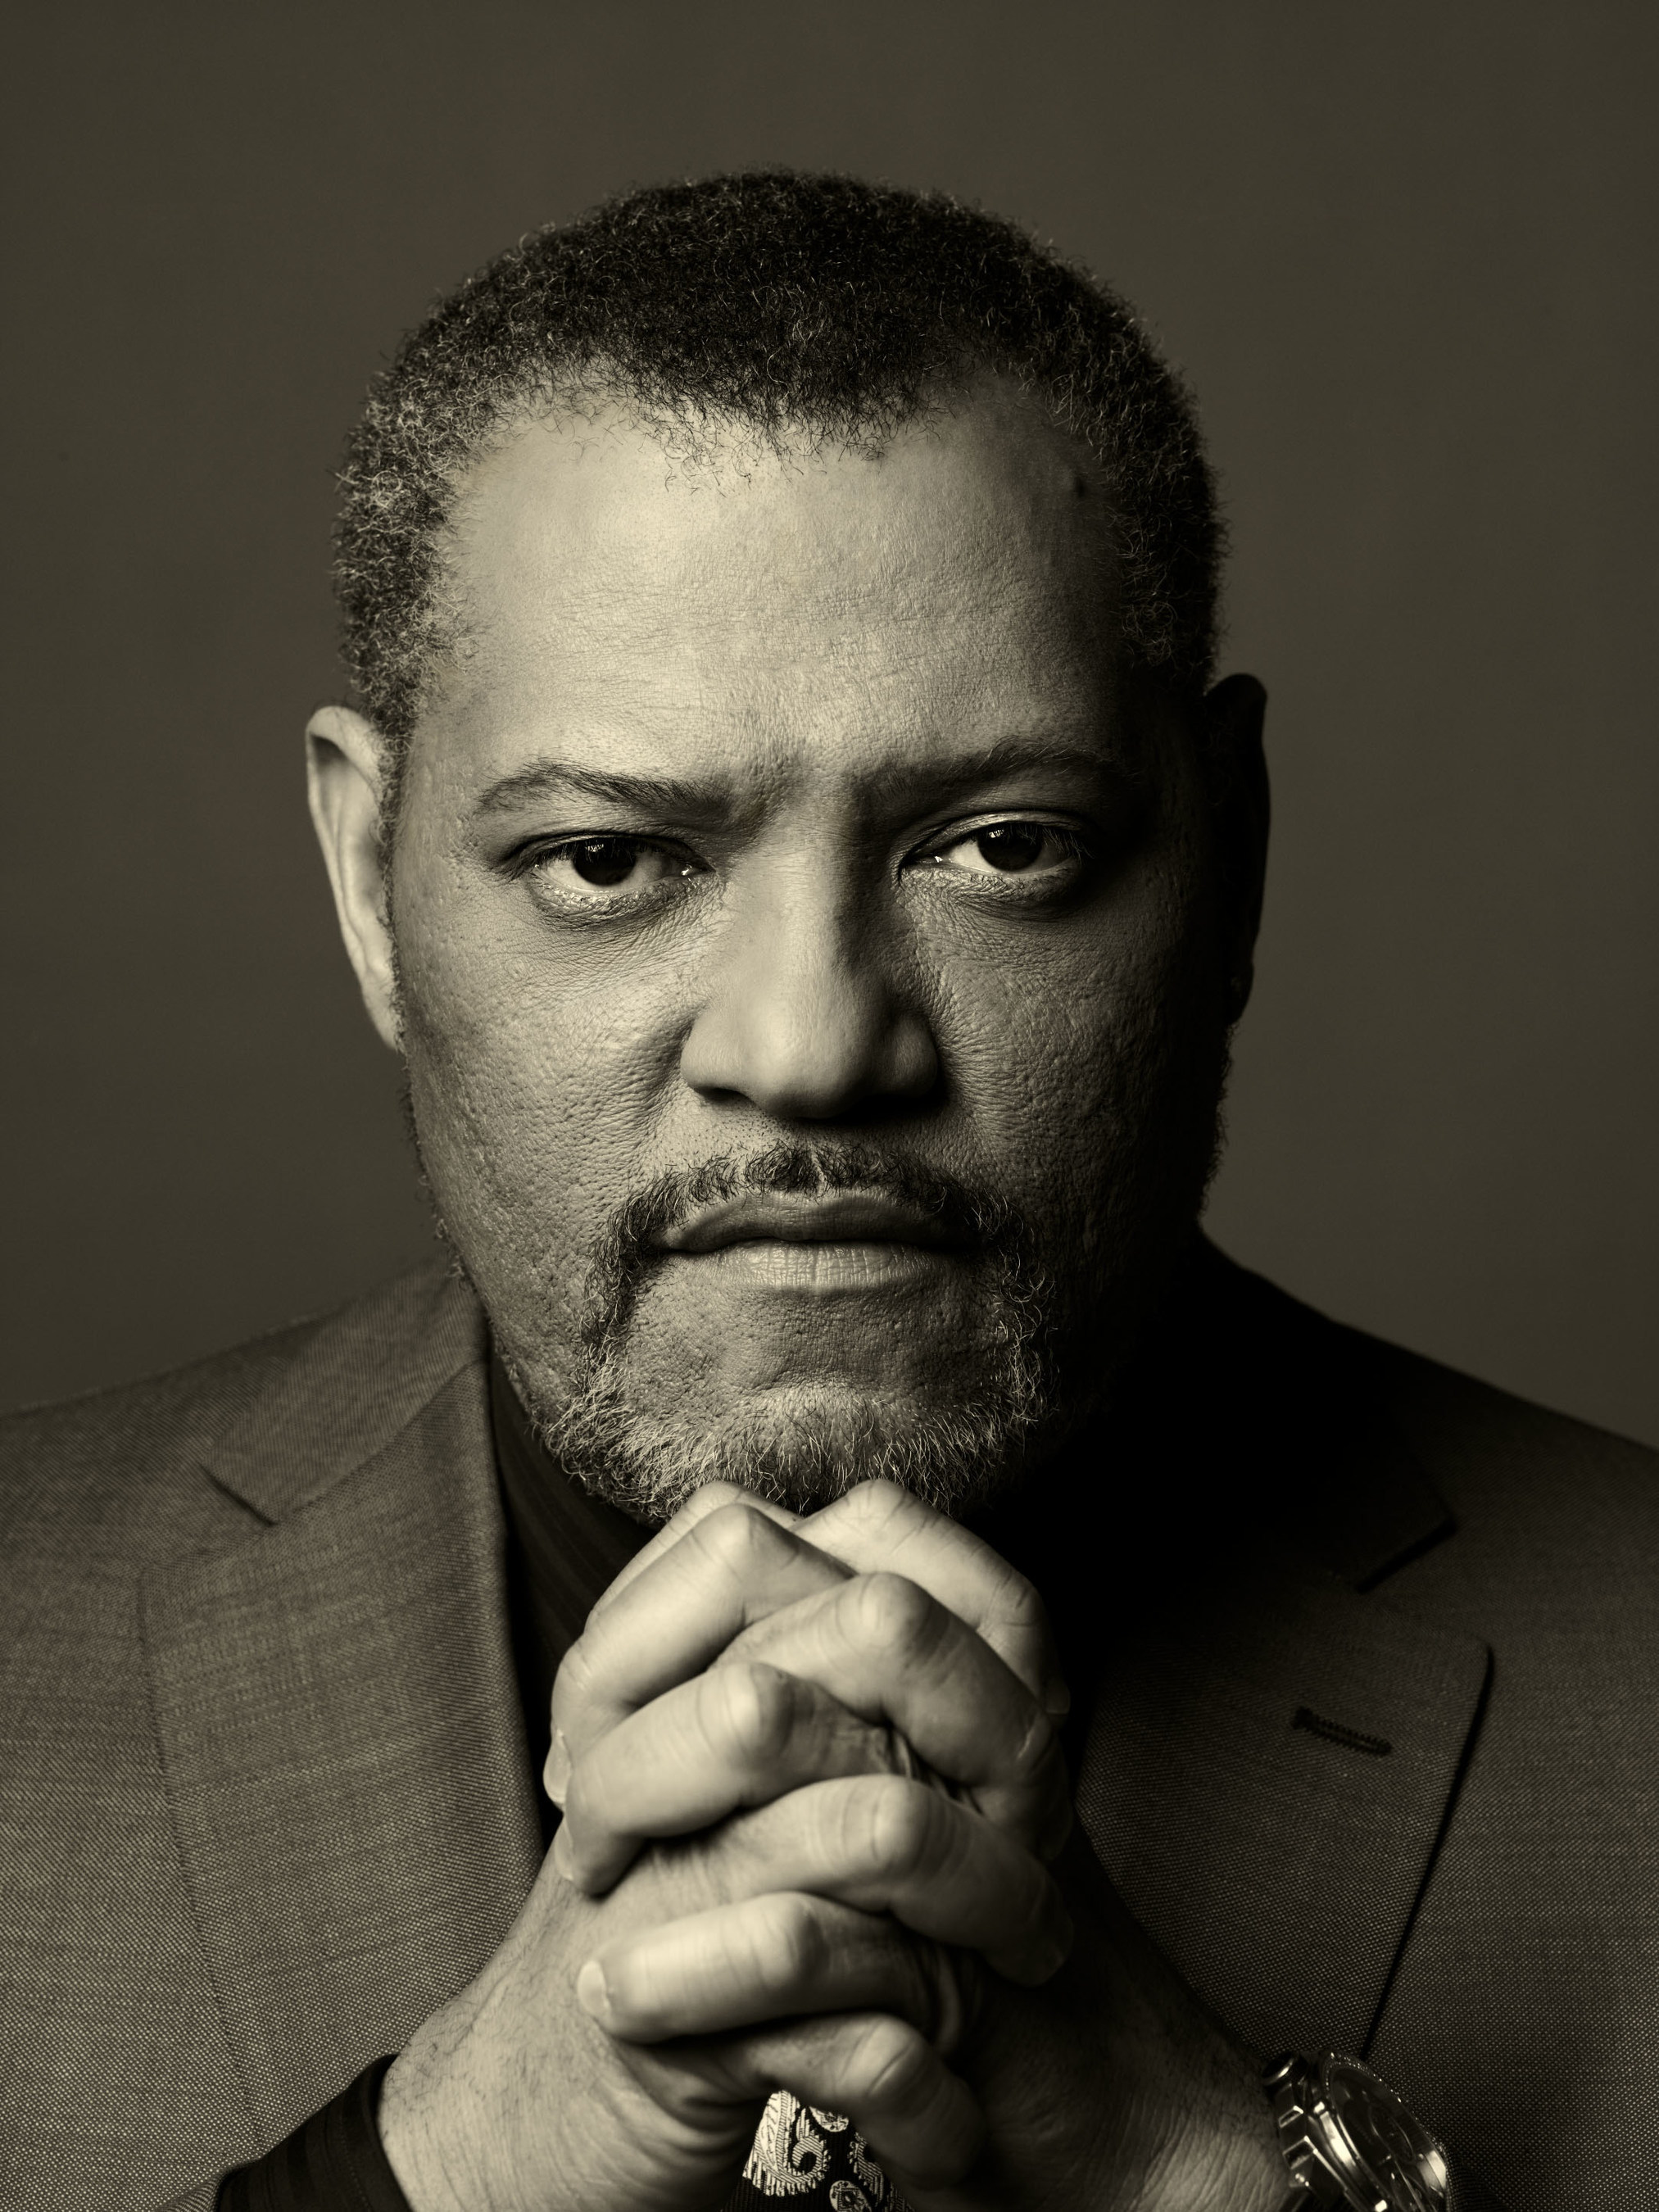 Laurence Fishburne, Laura Benanti, Esai Morales And Jason Dolley Join All-Star Line-Up For PBS' National Memorial Day Concert, Honoring Our American Heroes Live From The